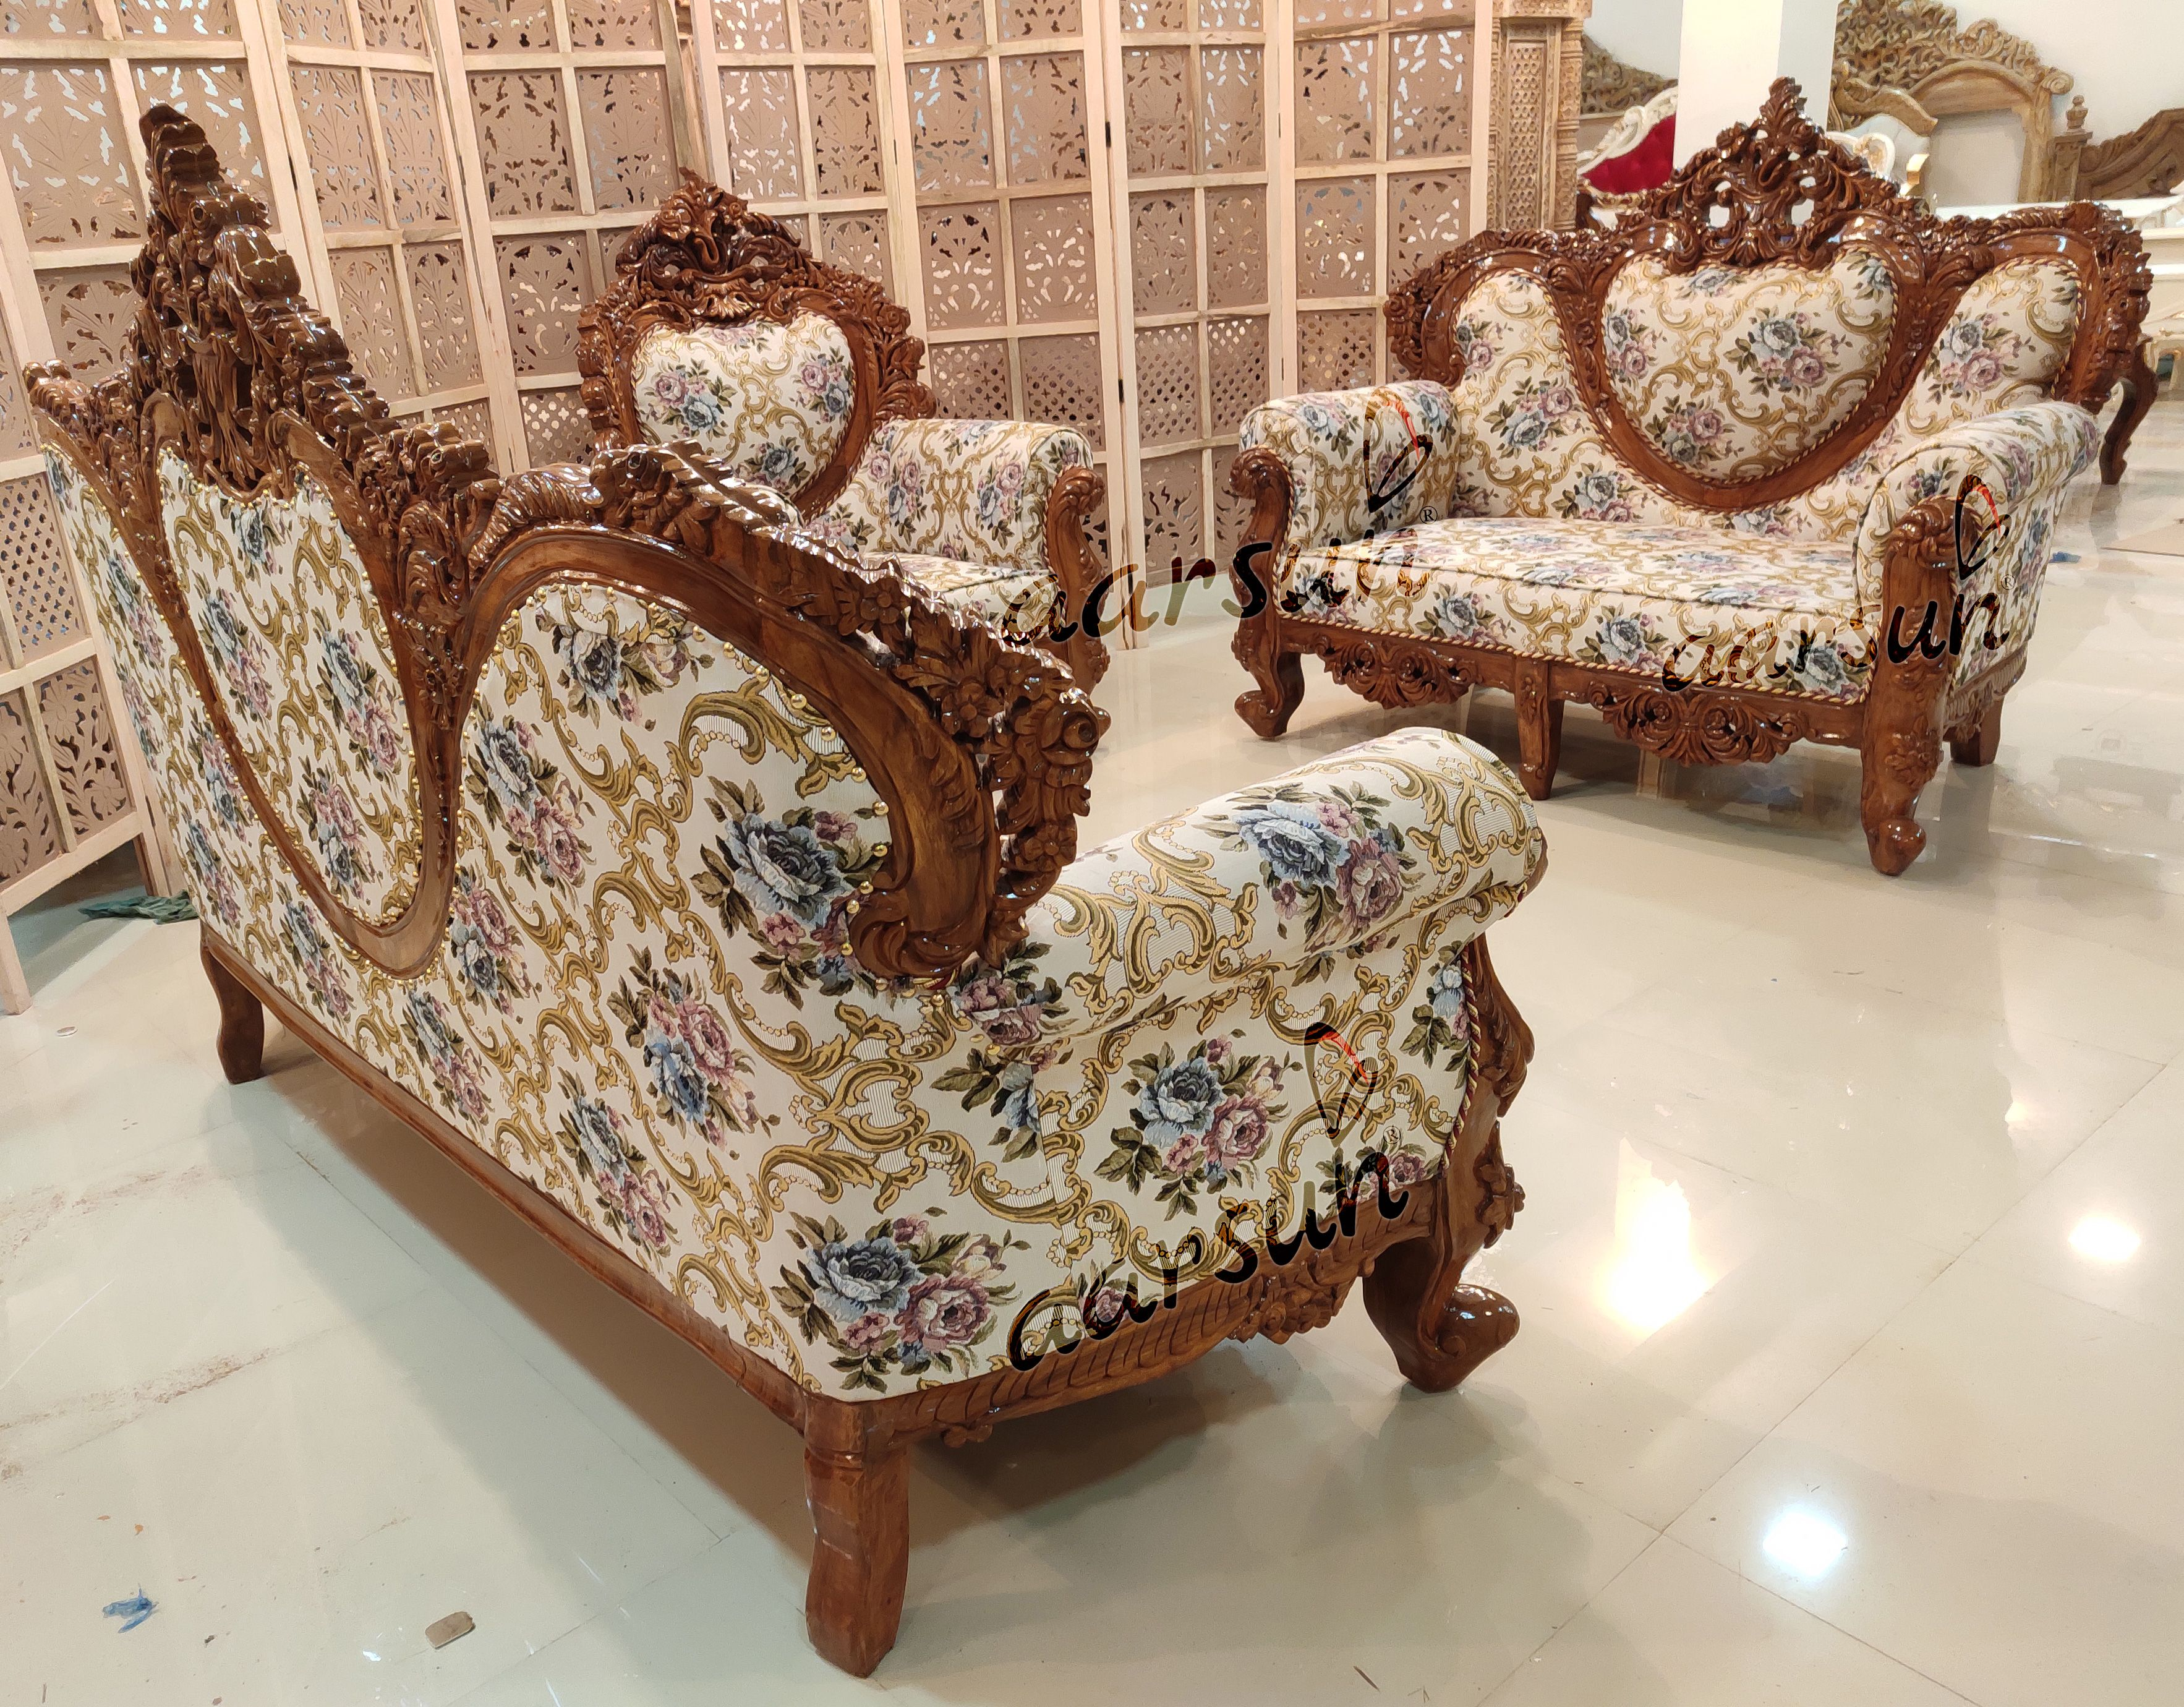 Best 7 Seater Sofa Set With Center Table Yt 49 Wooden Sofa Set Designs Wooden Sofa Set Sofa Set Designs